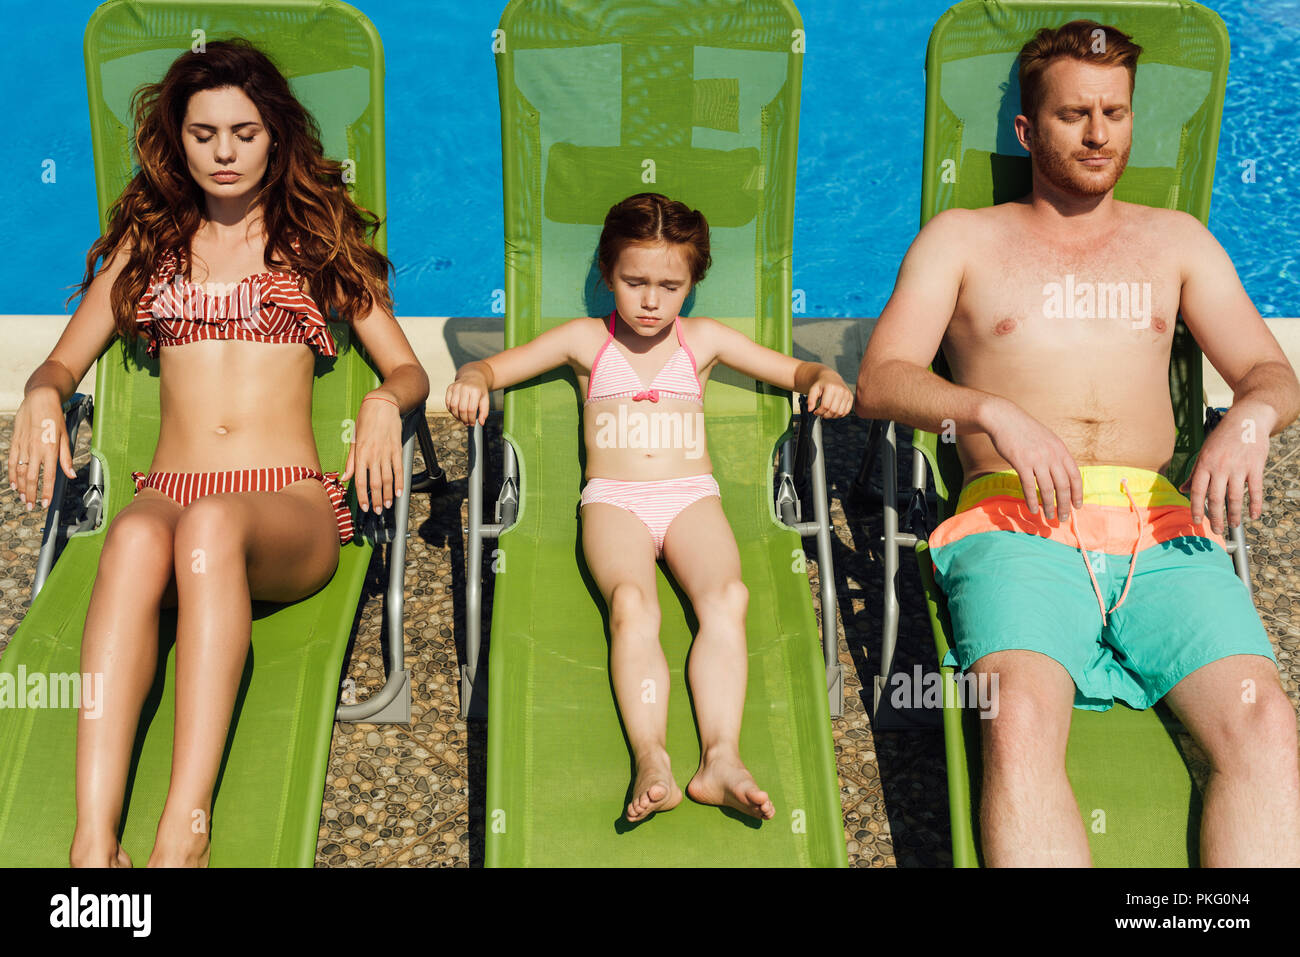 relaxed young family tanning on sun loungers together - Stock Image